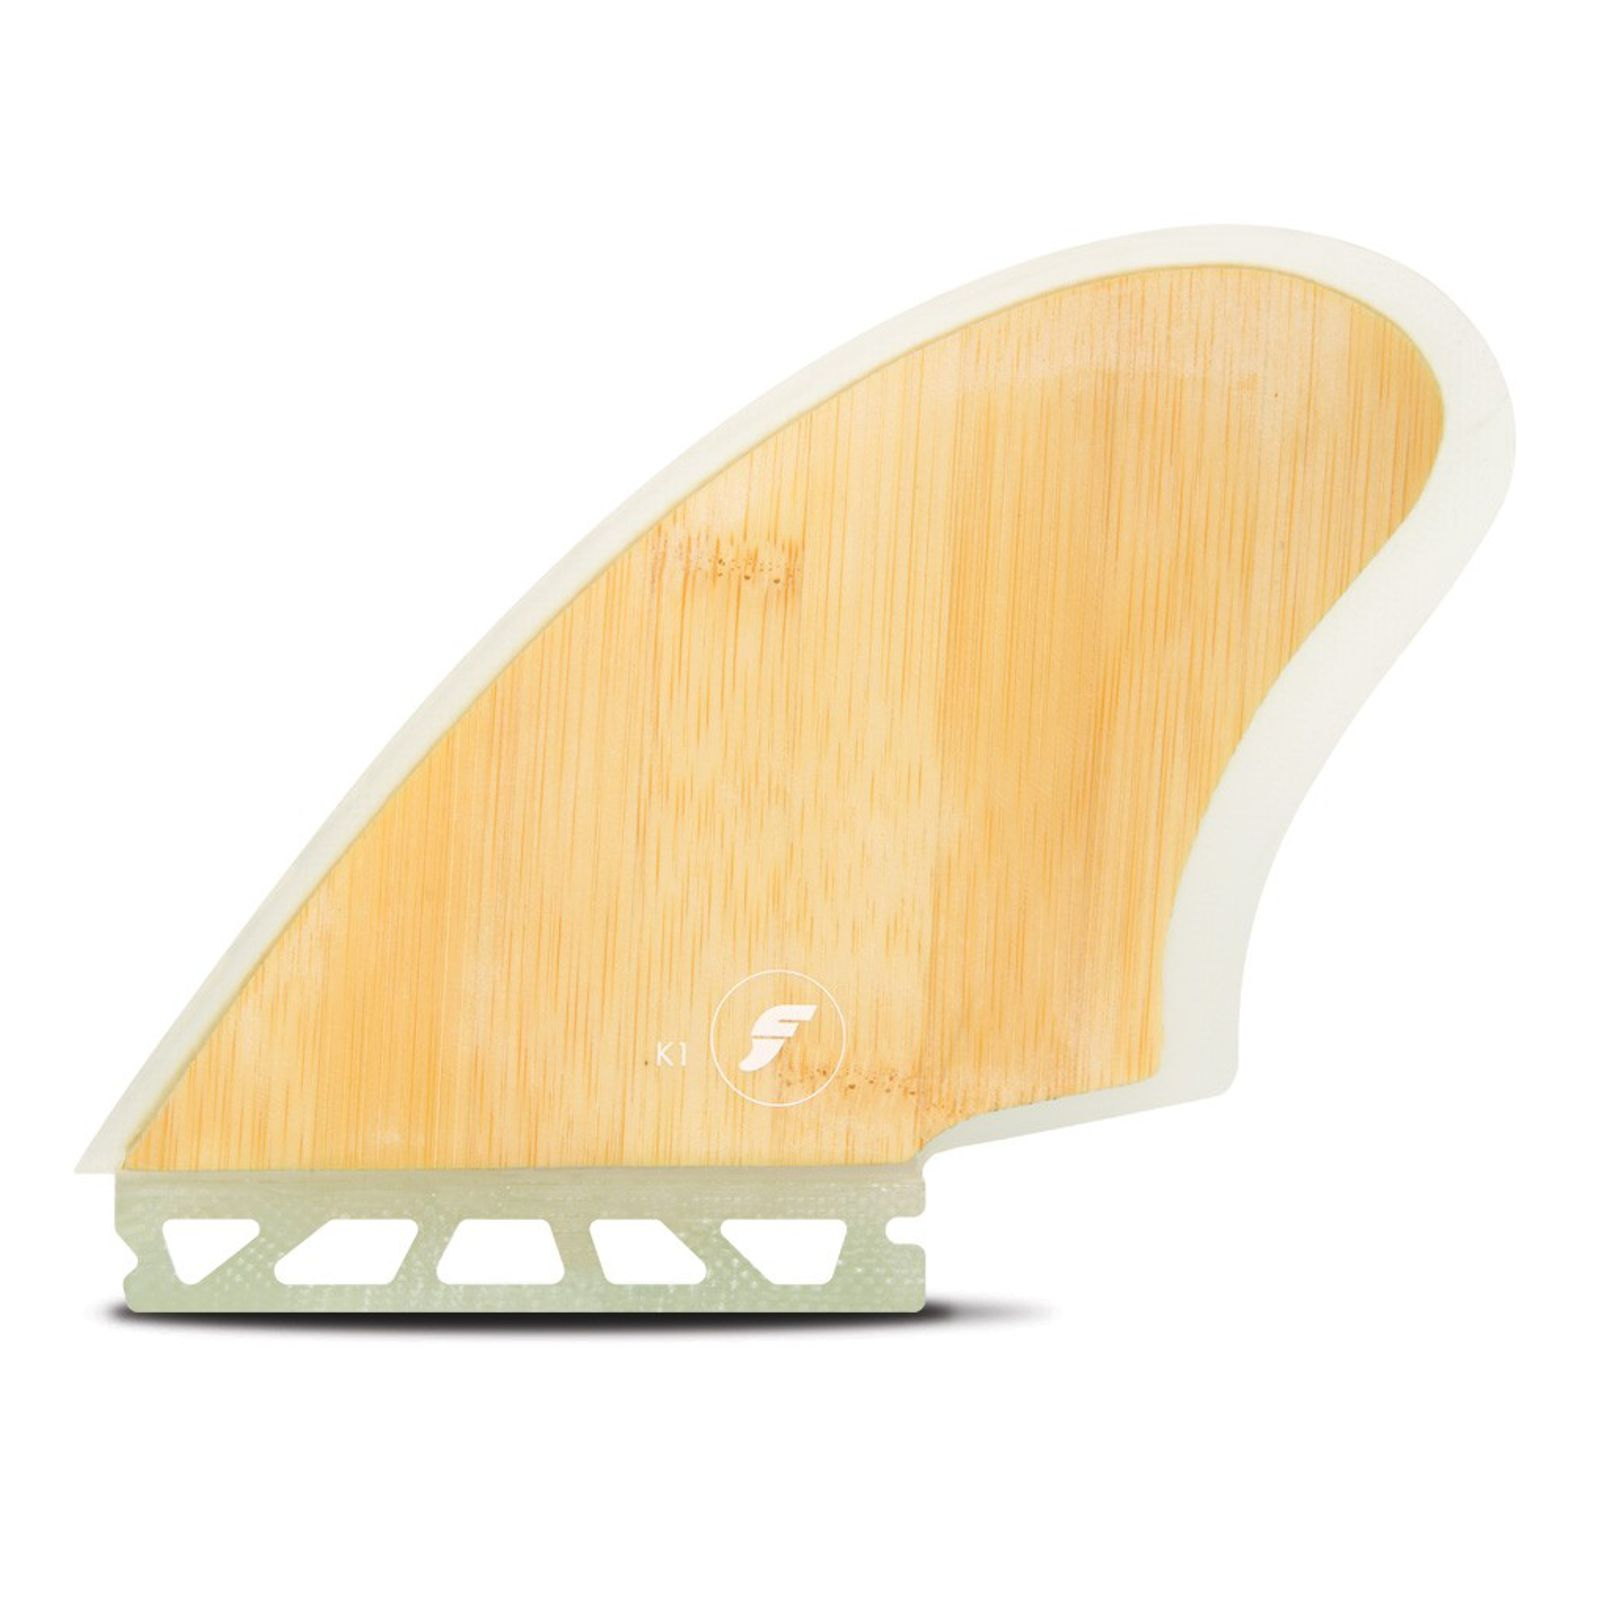 FUTURES Twin Fin Set K1 Keel Honeycomb Bamboo